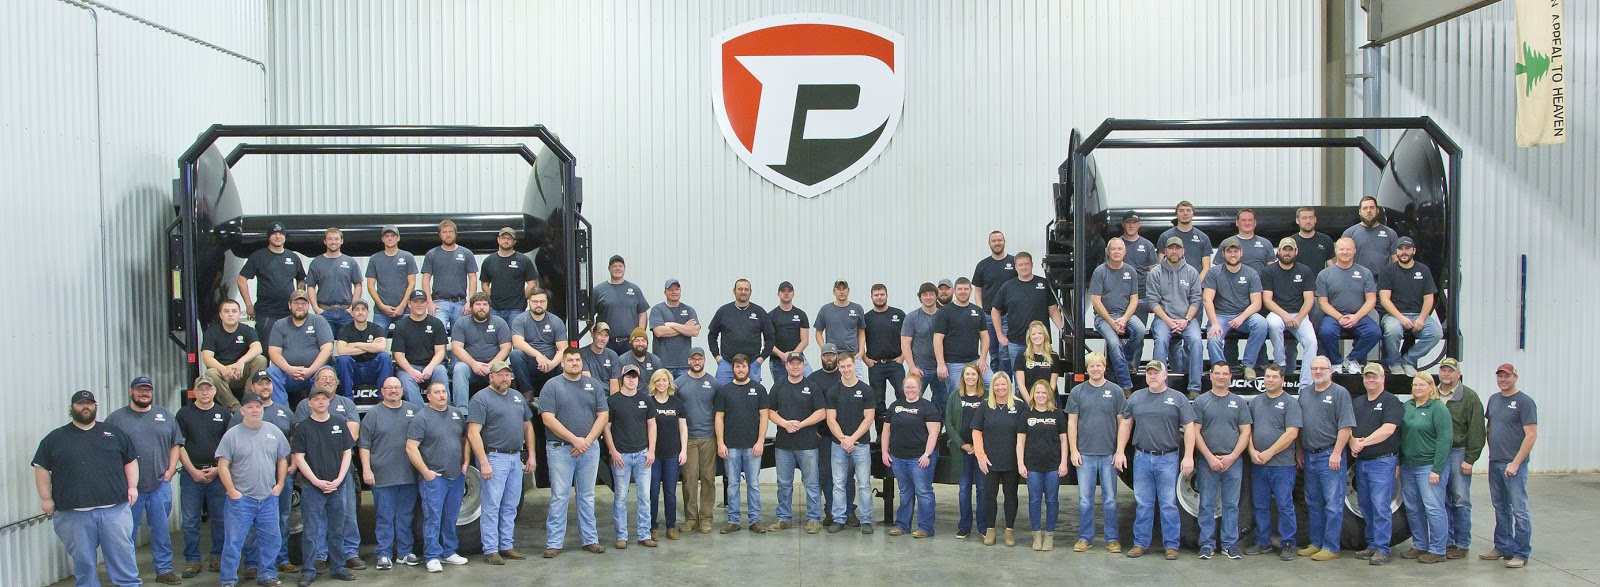 Puck Enterprises: 40 Years of Excellence Here in Western Iowa! Main Photo